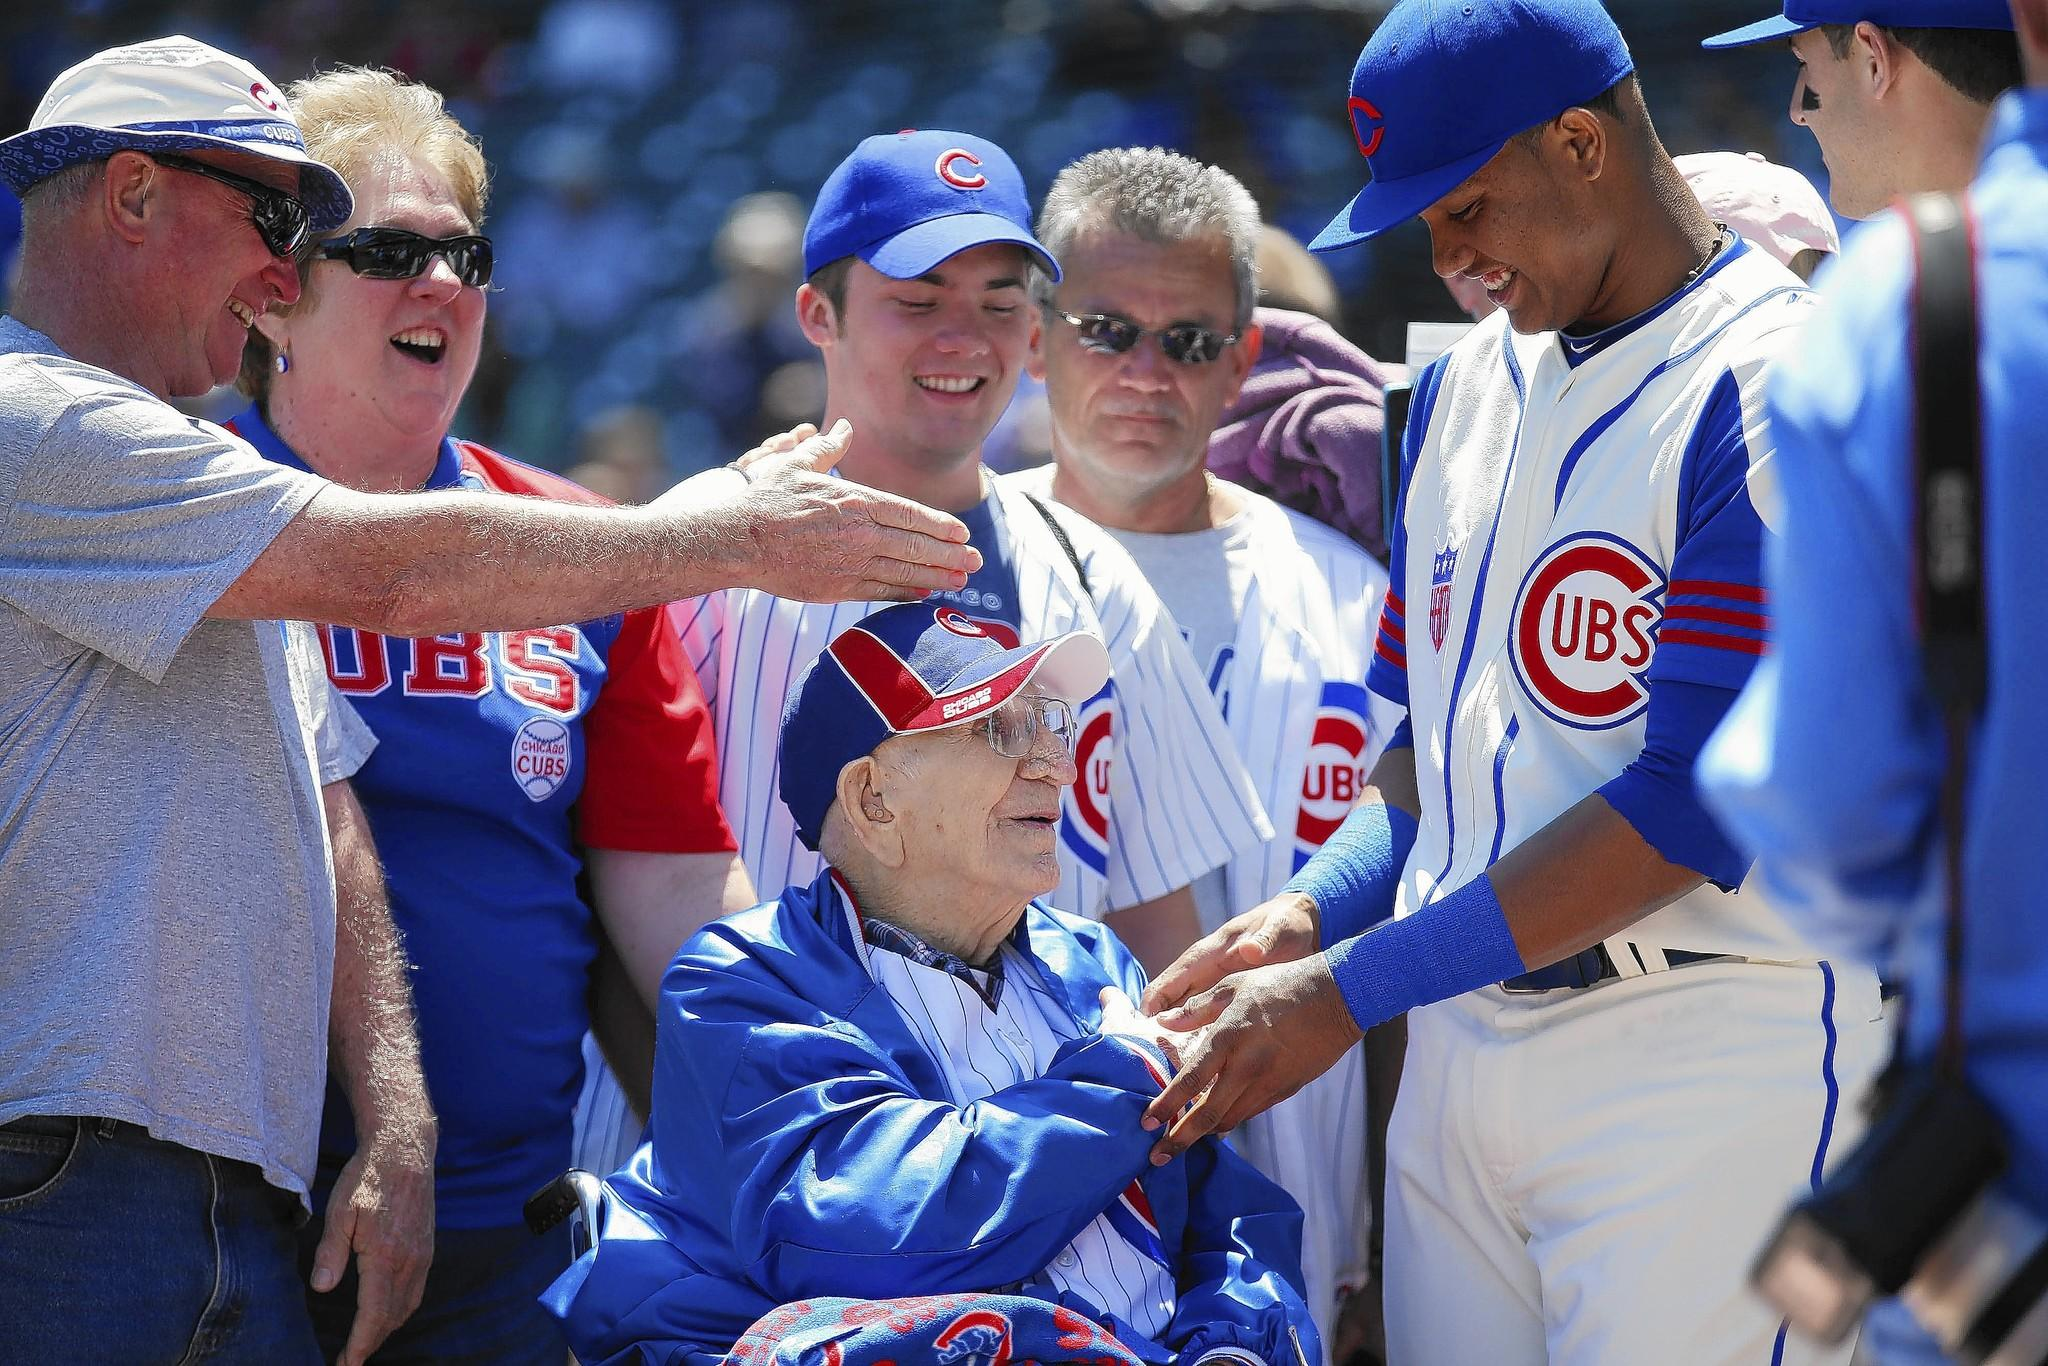 Louis Reinhart, a retired farmer from Metamora, is greeted by Chicago Cubs shortstop Starlin Castro (13), right, during pre-game activities prior to a game between the Chicago Cubs and Miami Marlins at Wrigley Field.